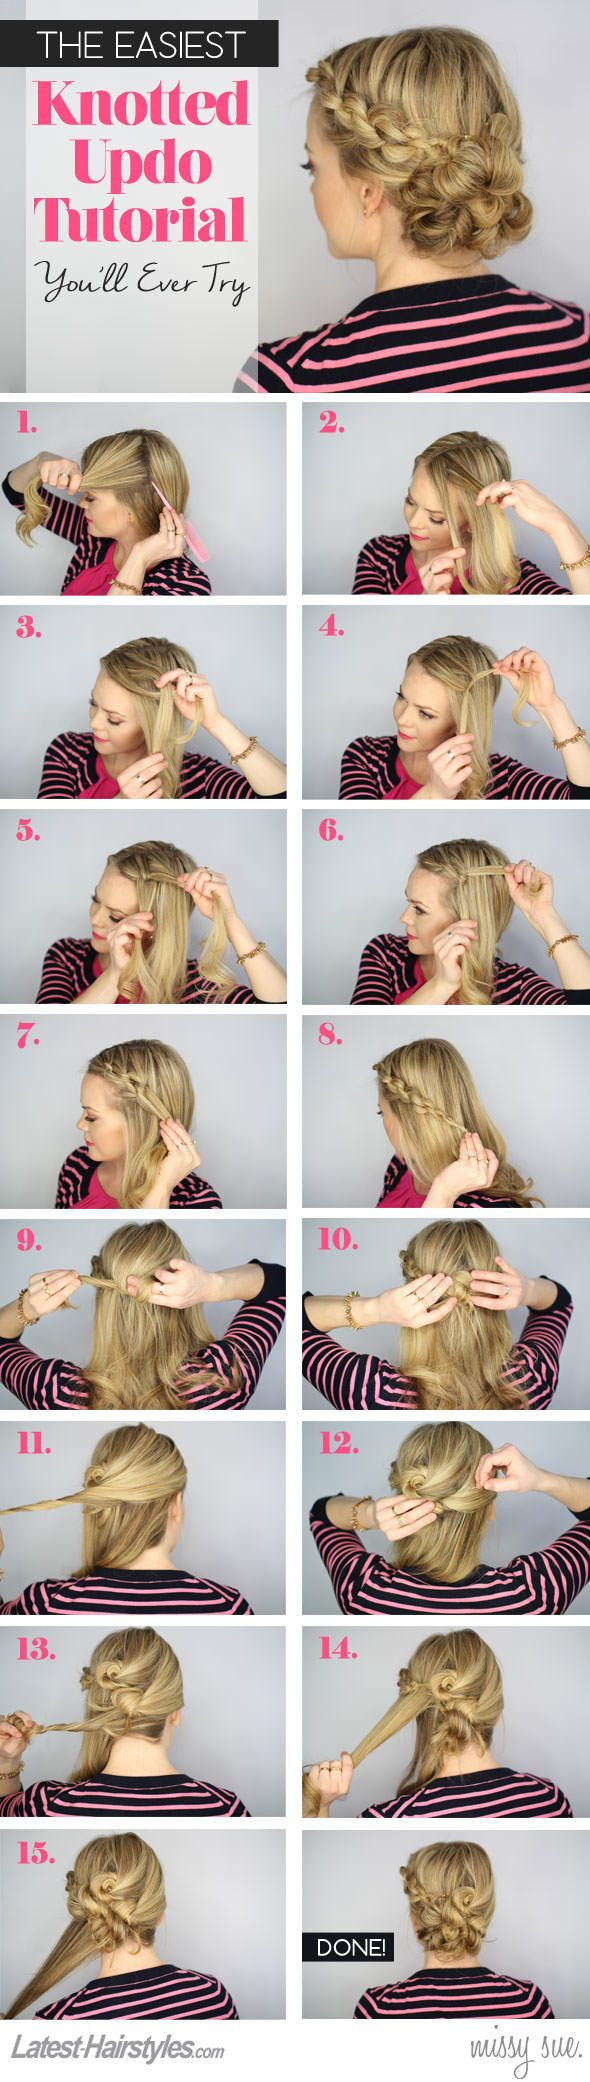 Hochsteckfrisur Inspiration | The Knotted Updo You Need to Try | Tutorial